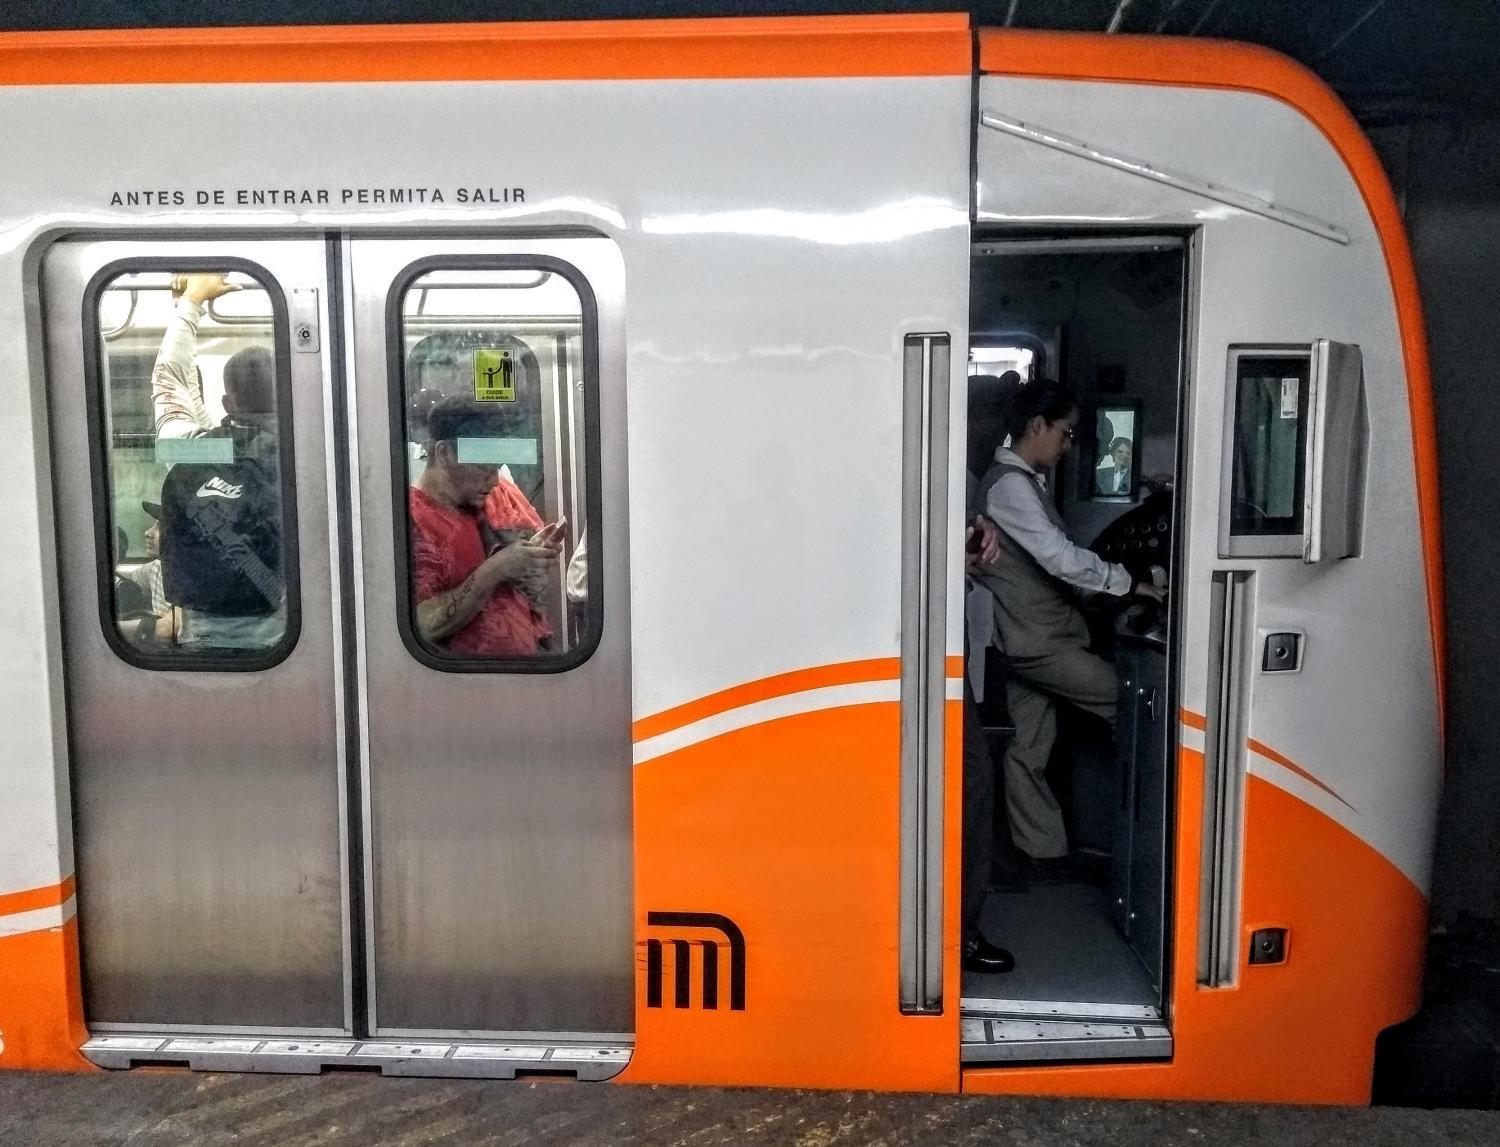 A female driver rides one of the newst trains in Mexico City